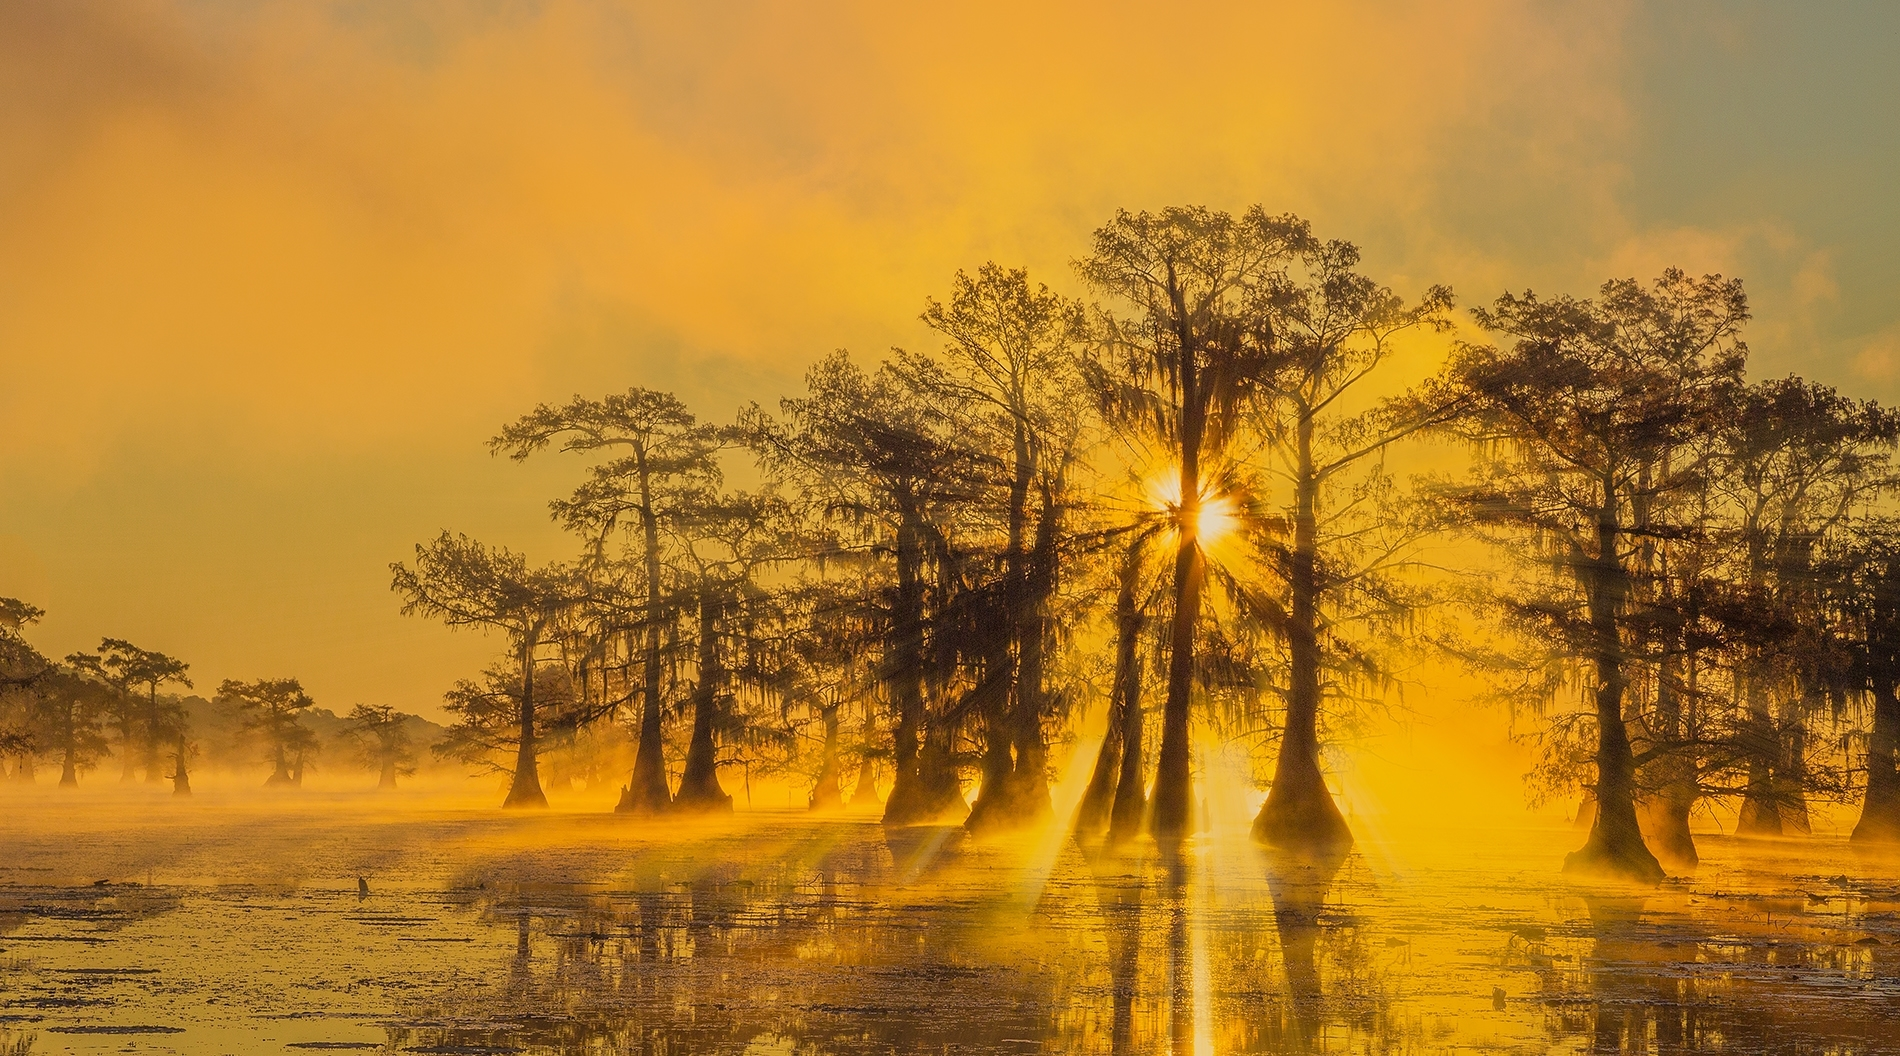 Foggy-sunrise-at-the-swamp-PM-Best-In-Show-by-Shinnan-Kiang-LV